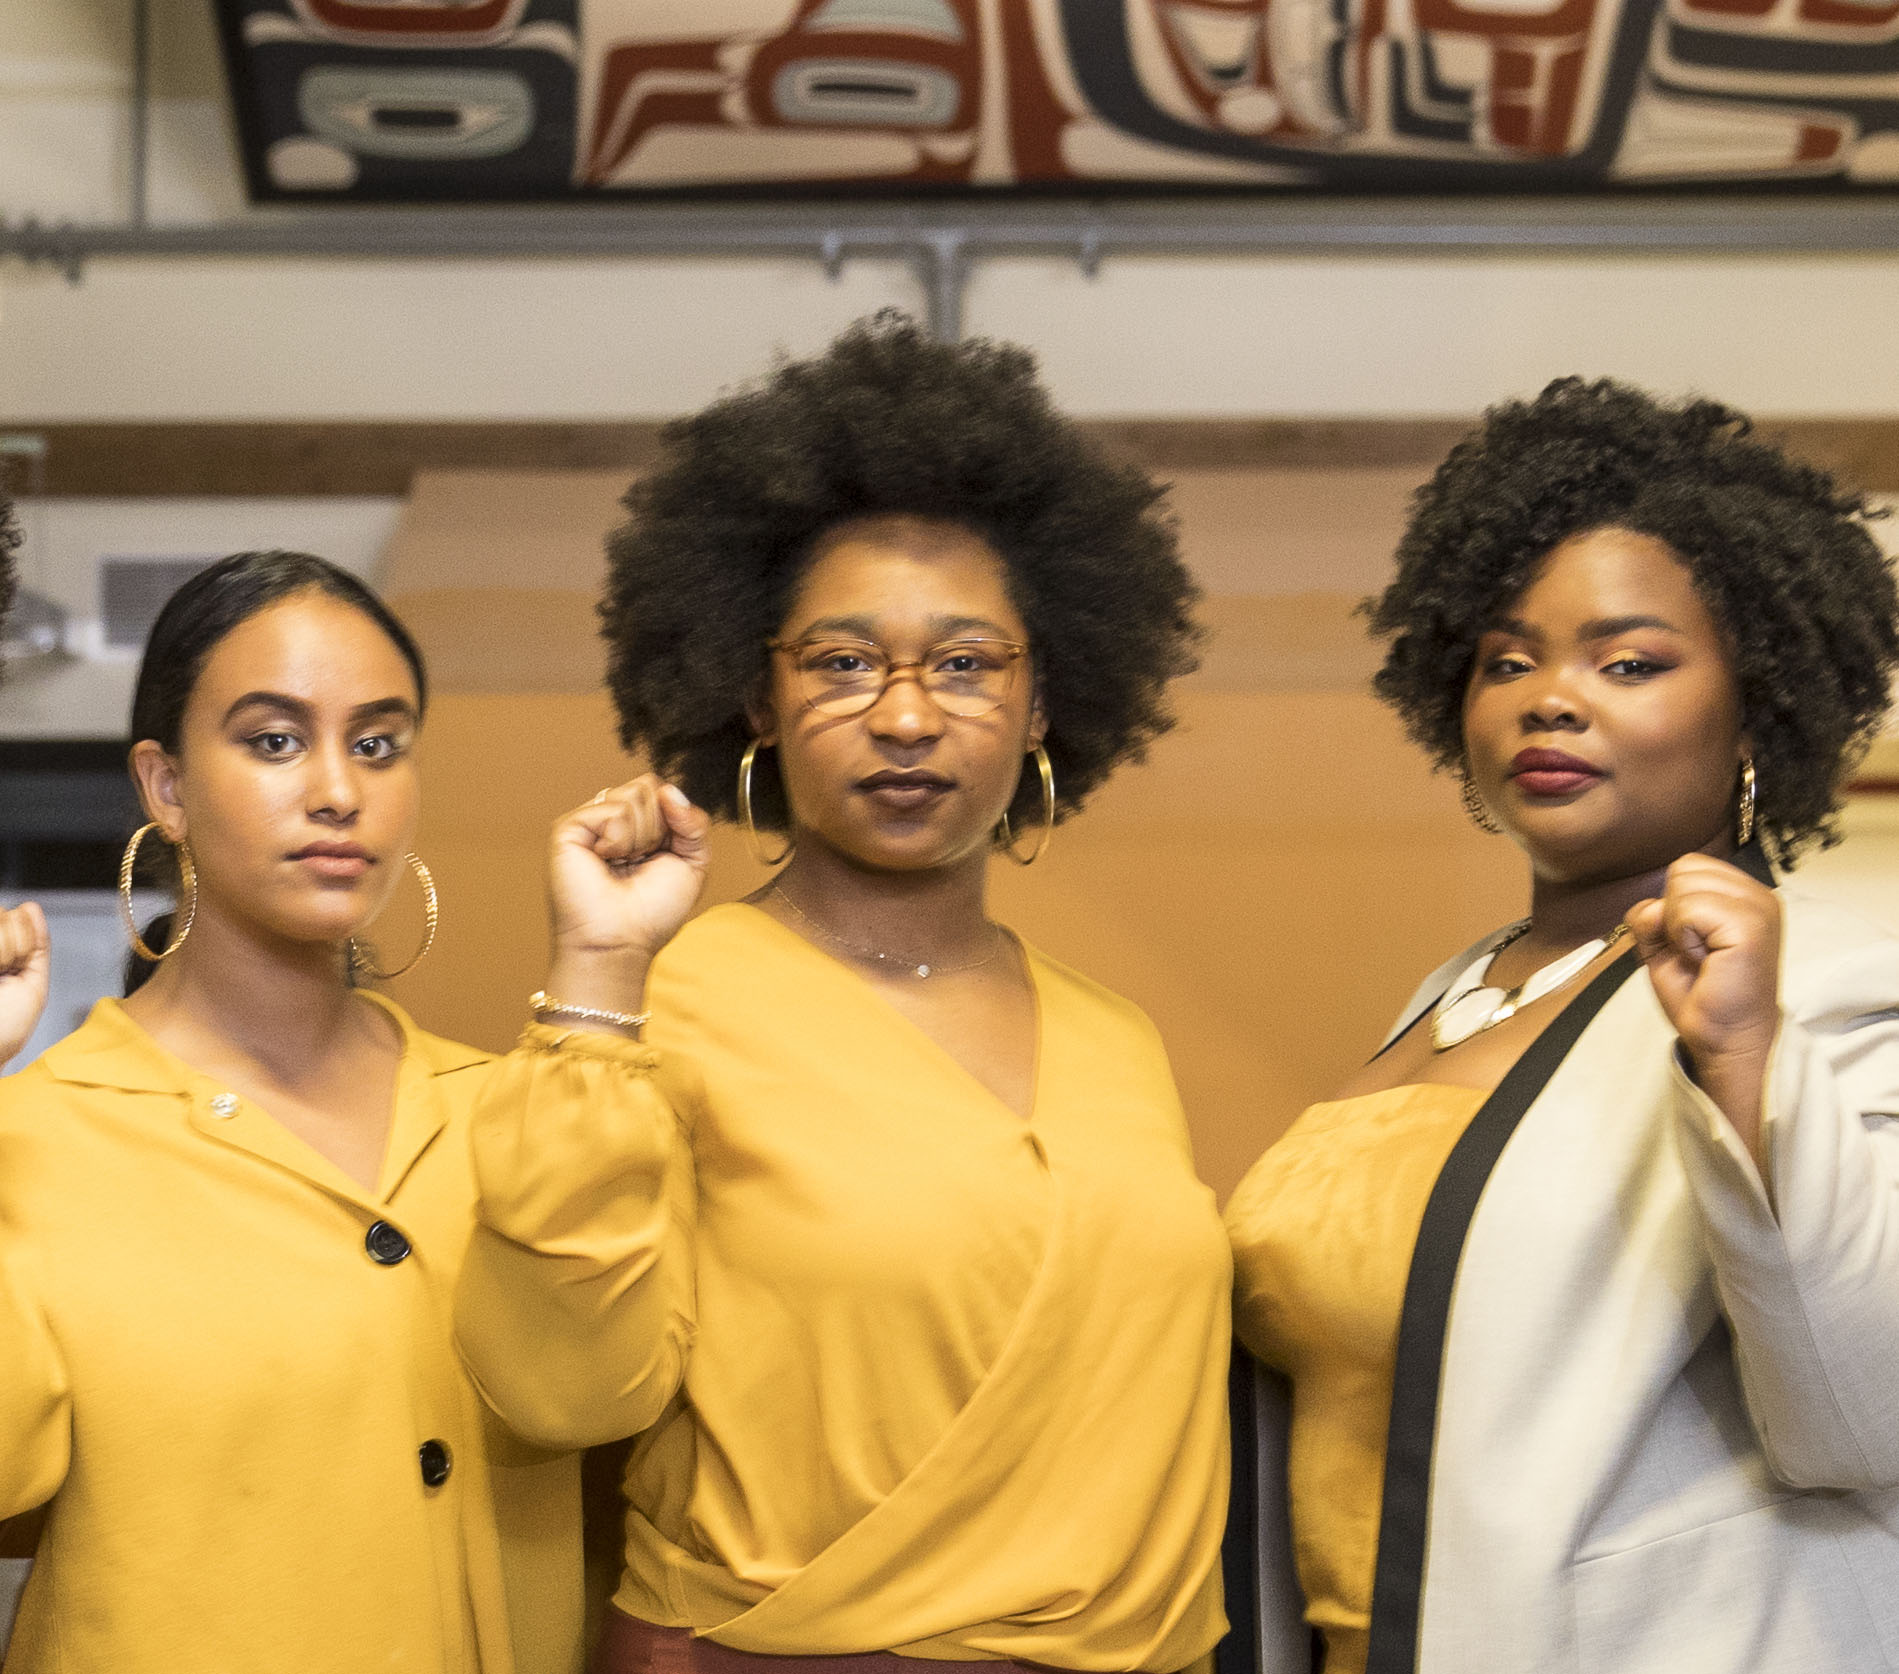 Link to article: UW Black Student Union Establishes Own Endowed Fund